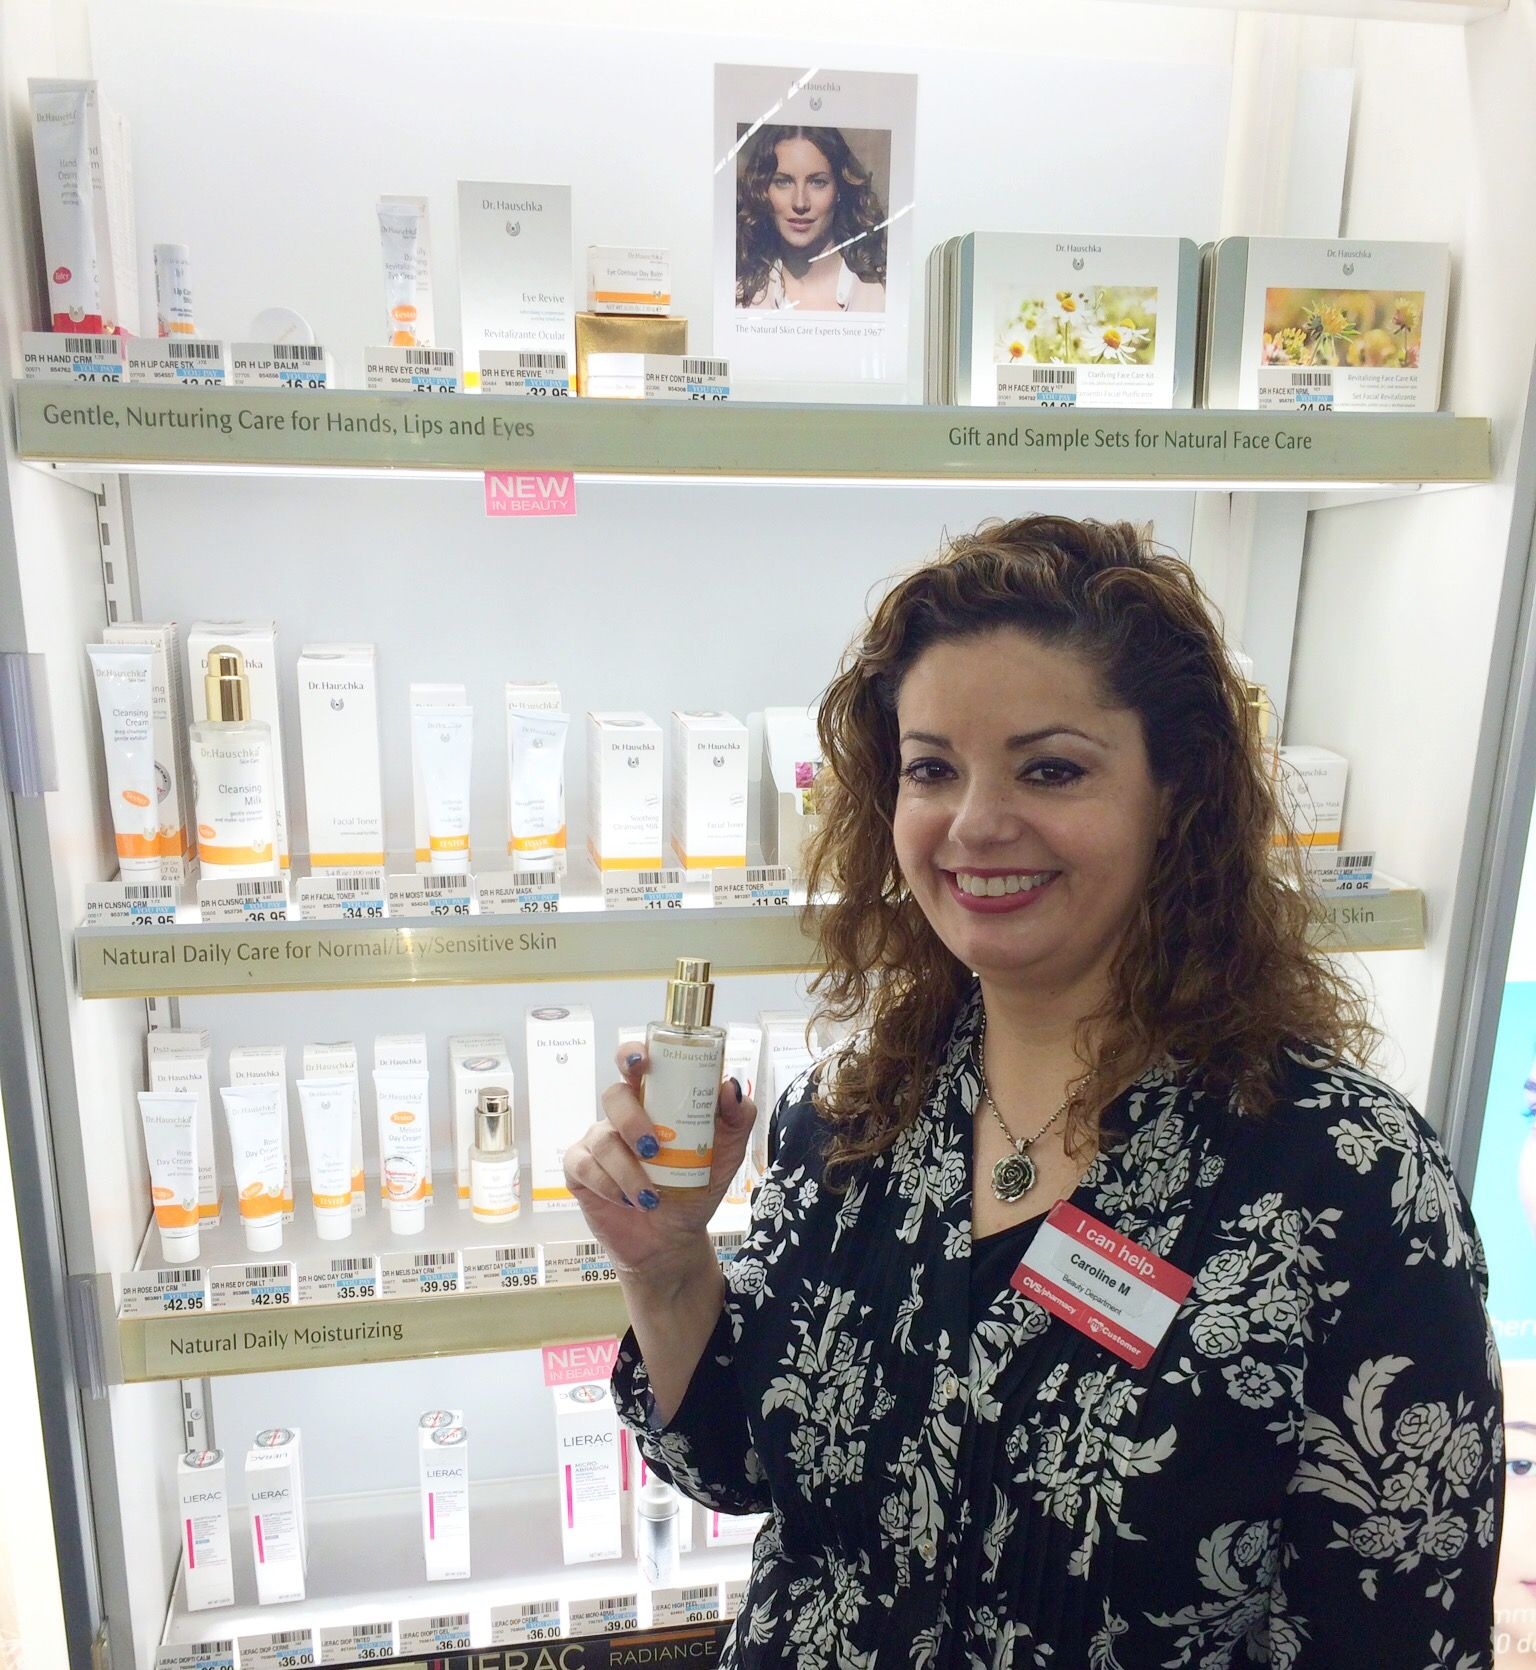 cvs beauty advisor chela s favorite product is soothing cleansing beauty advisor caroline from the cvs store at 511 hollywood way in burbank ca